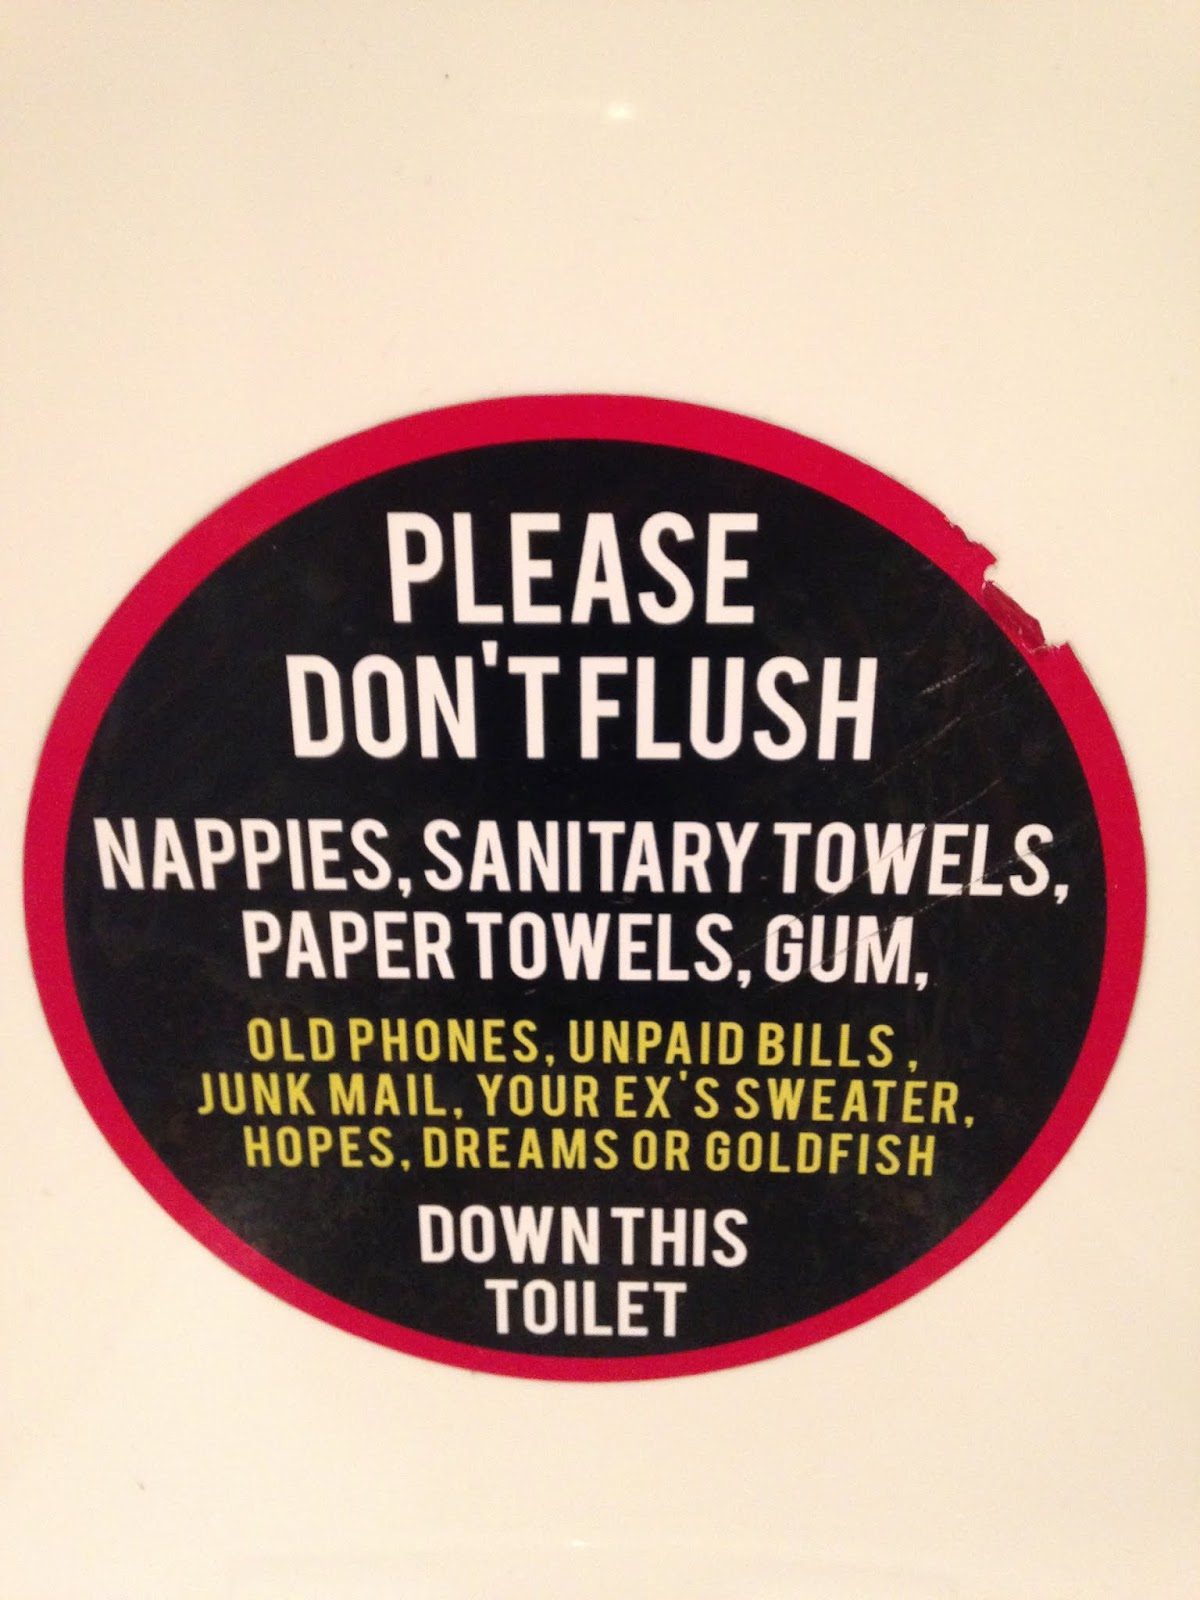 Please do not flush nappies, sanitary towels, paper towels, gum etc down this toilet